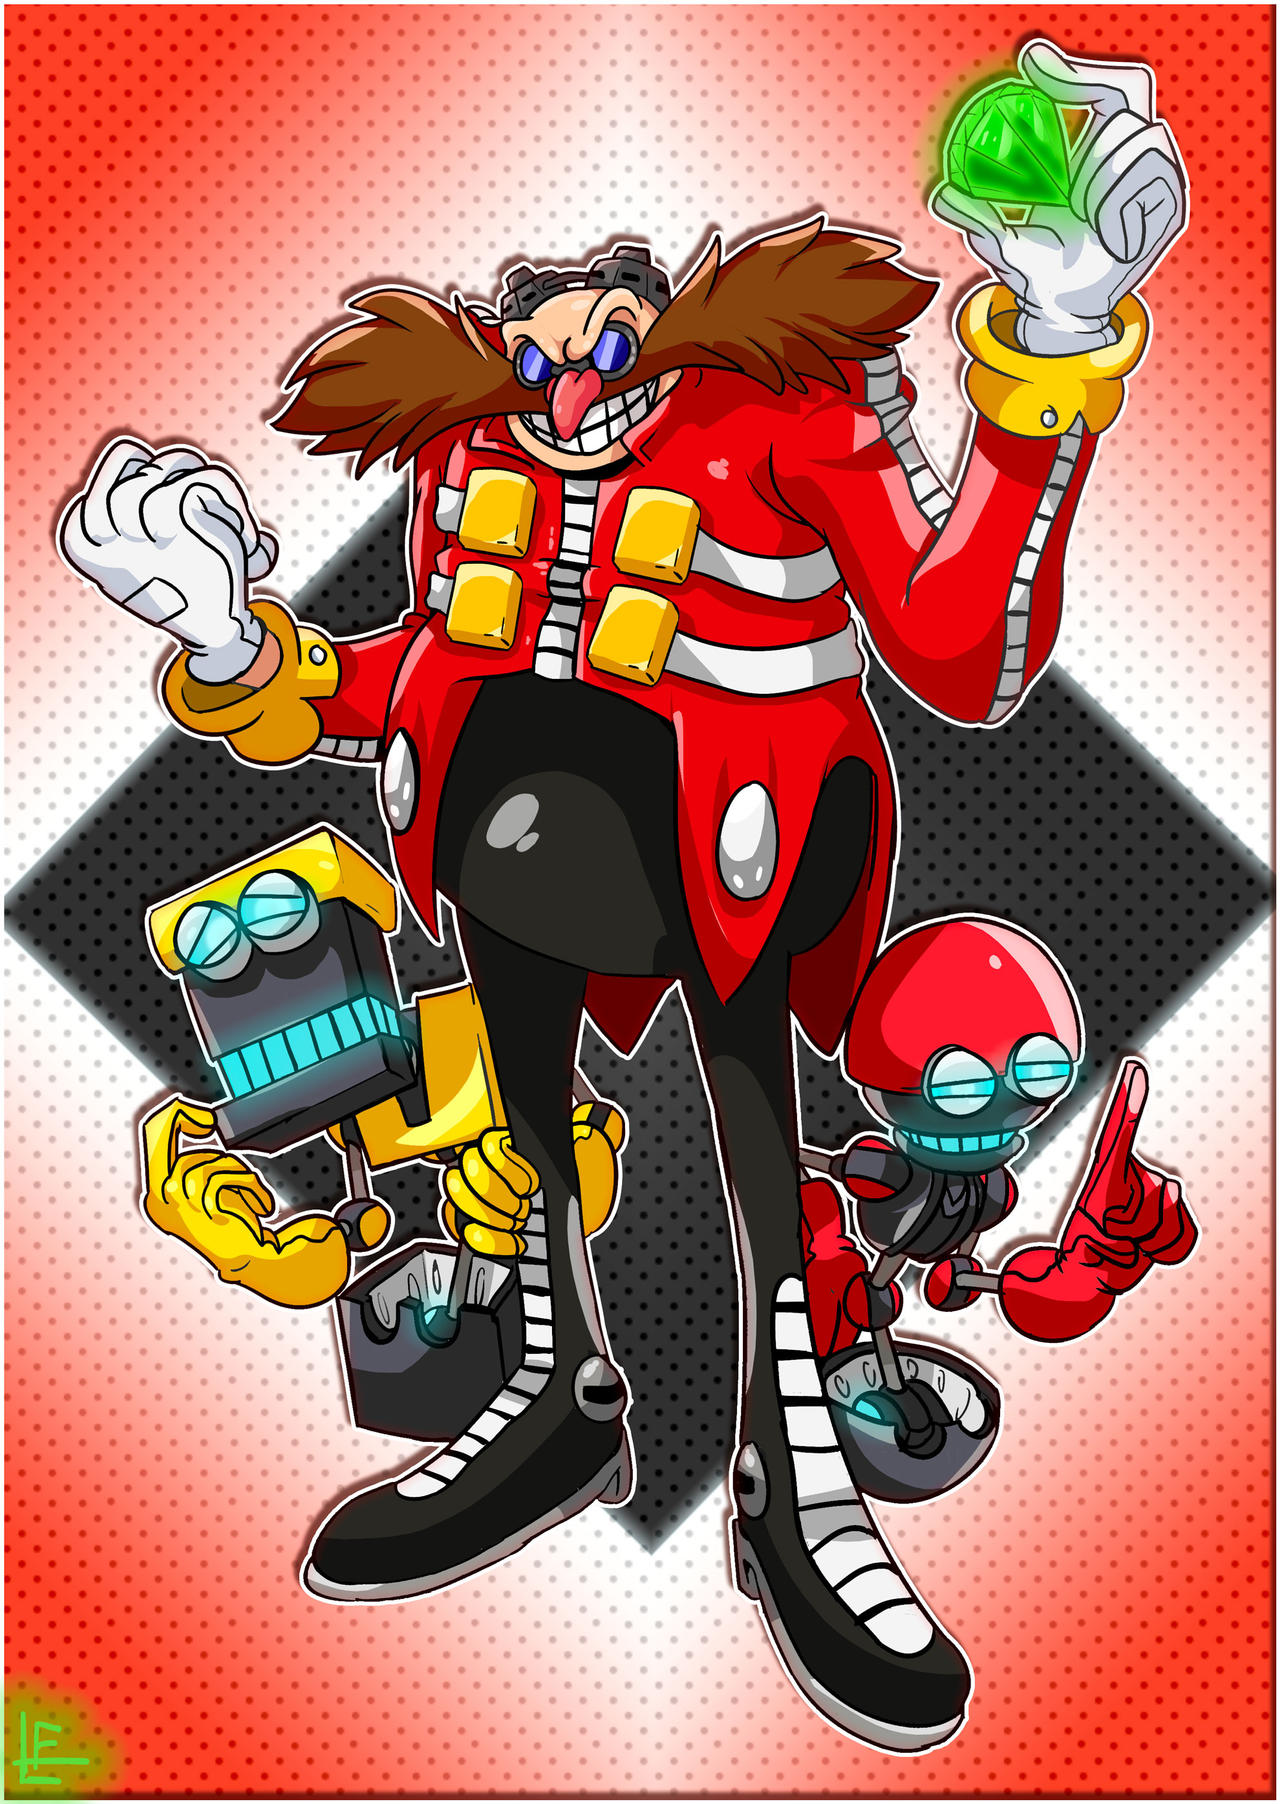 Sonic The Hedgehog Dr Eggman Orbot And Cubot By Eggmanfan91 On